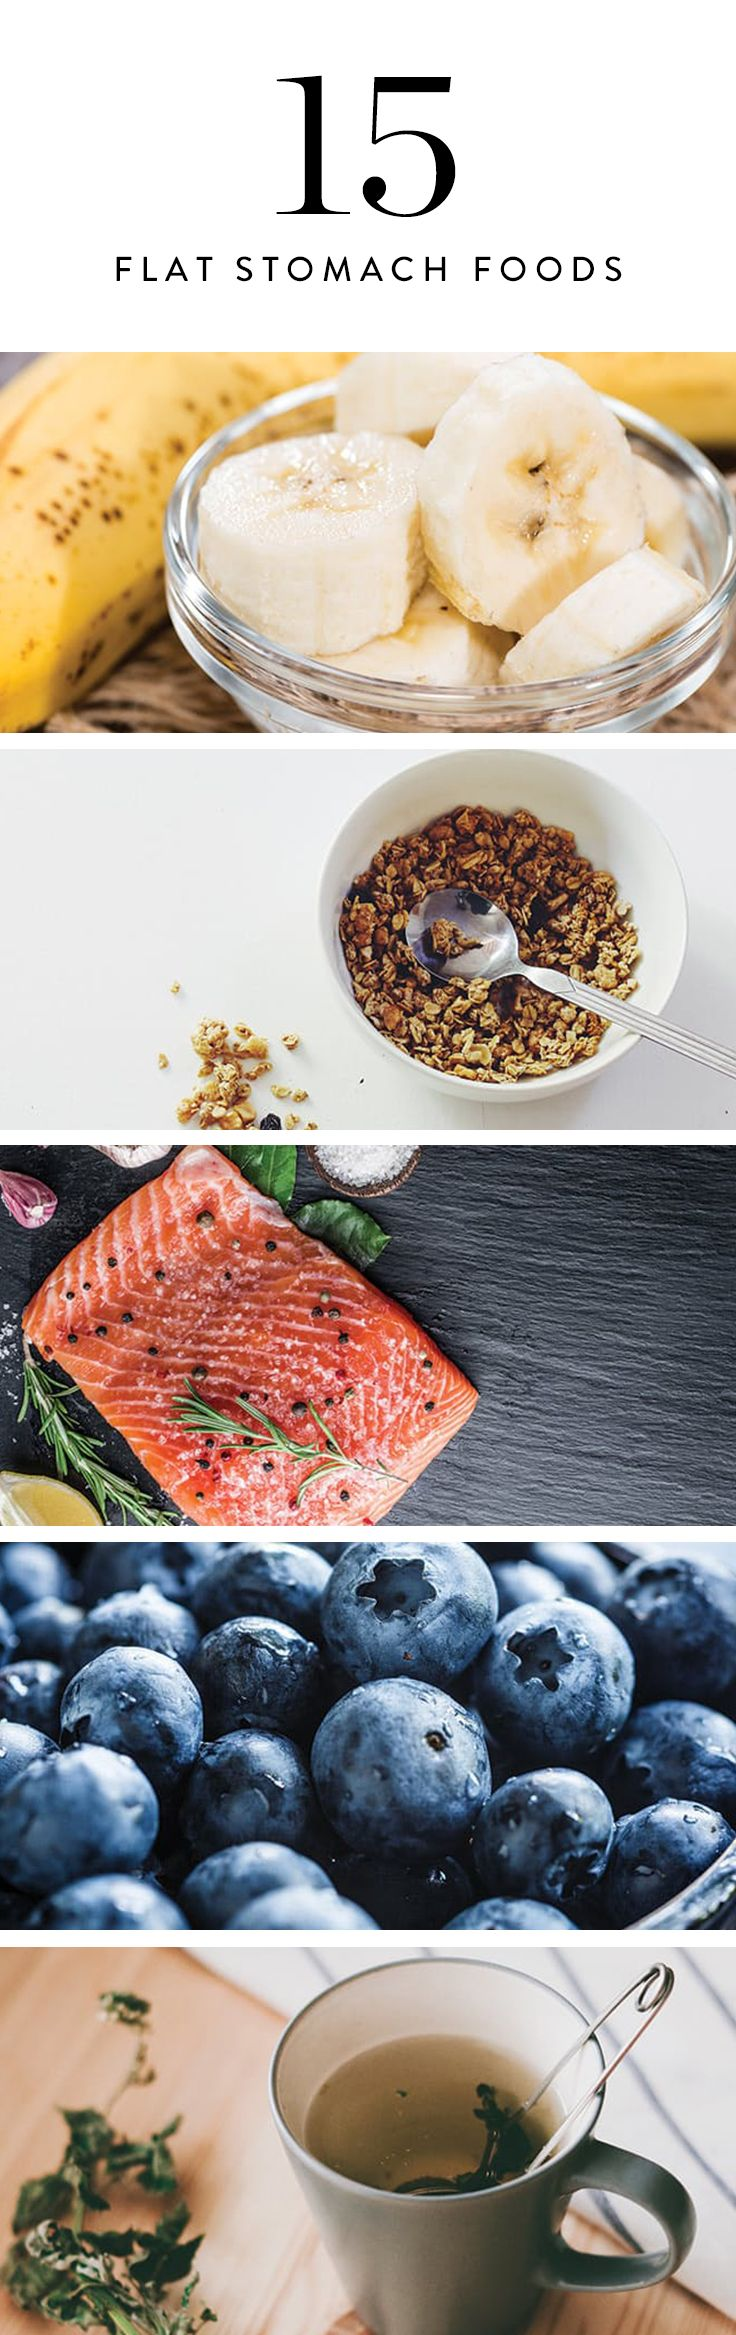 15 Foods to Eat for a Flatter Stomach